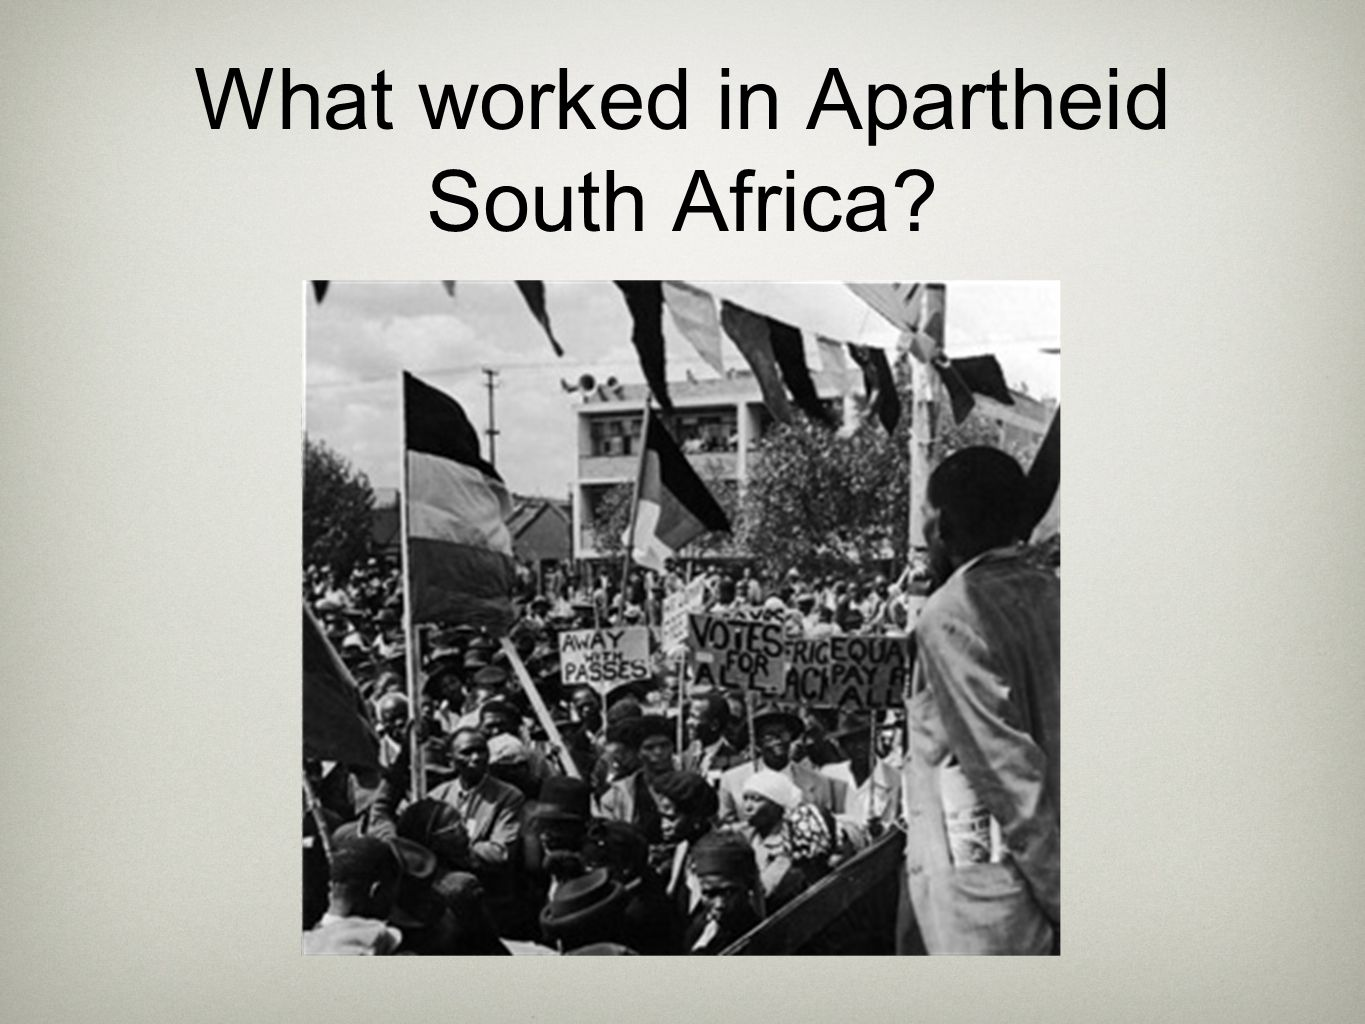 What worked in Apartheid South Africa